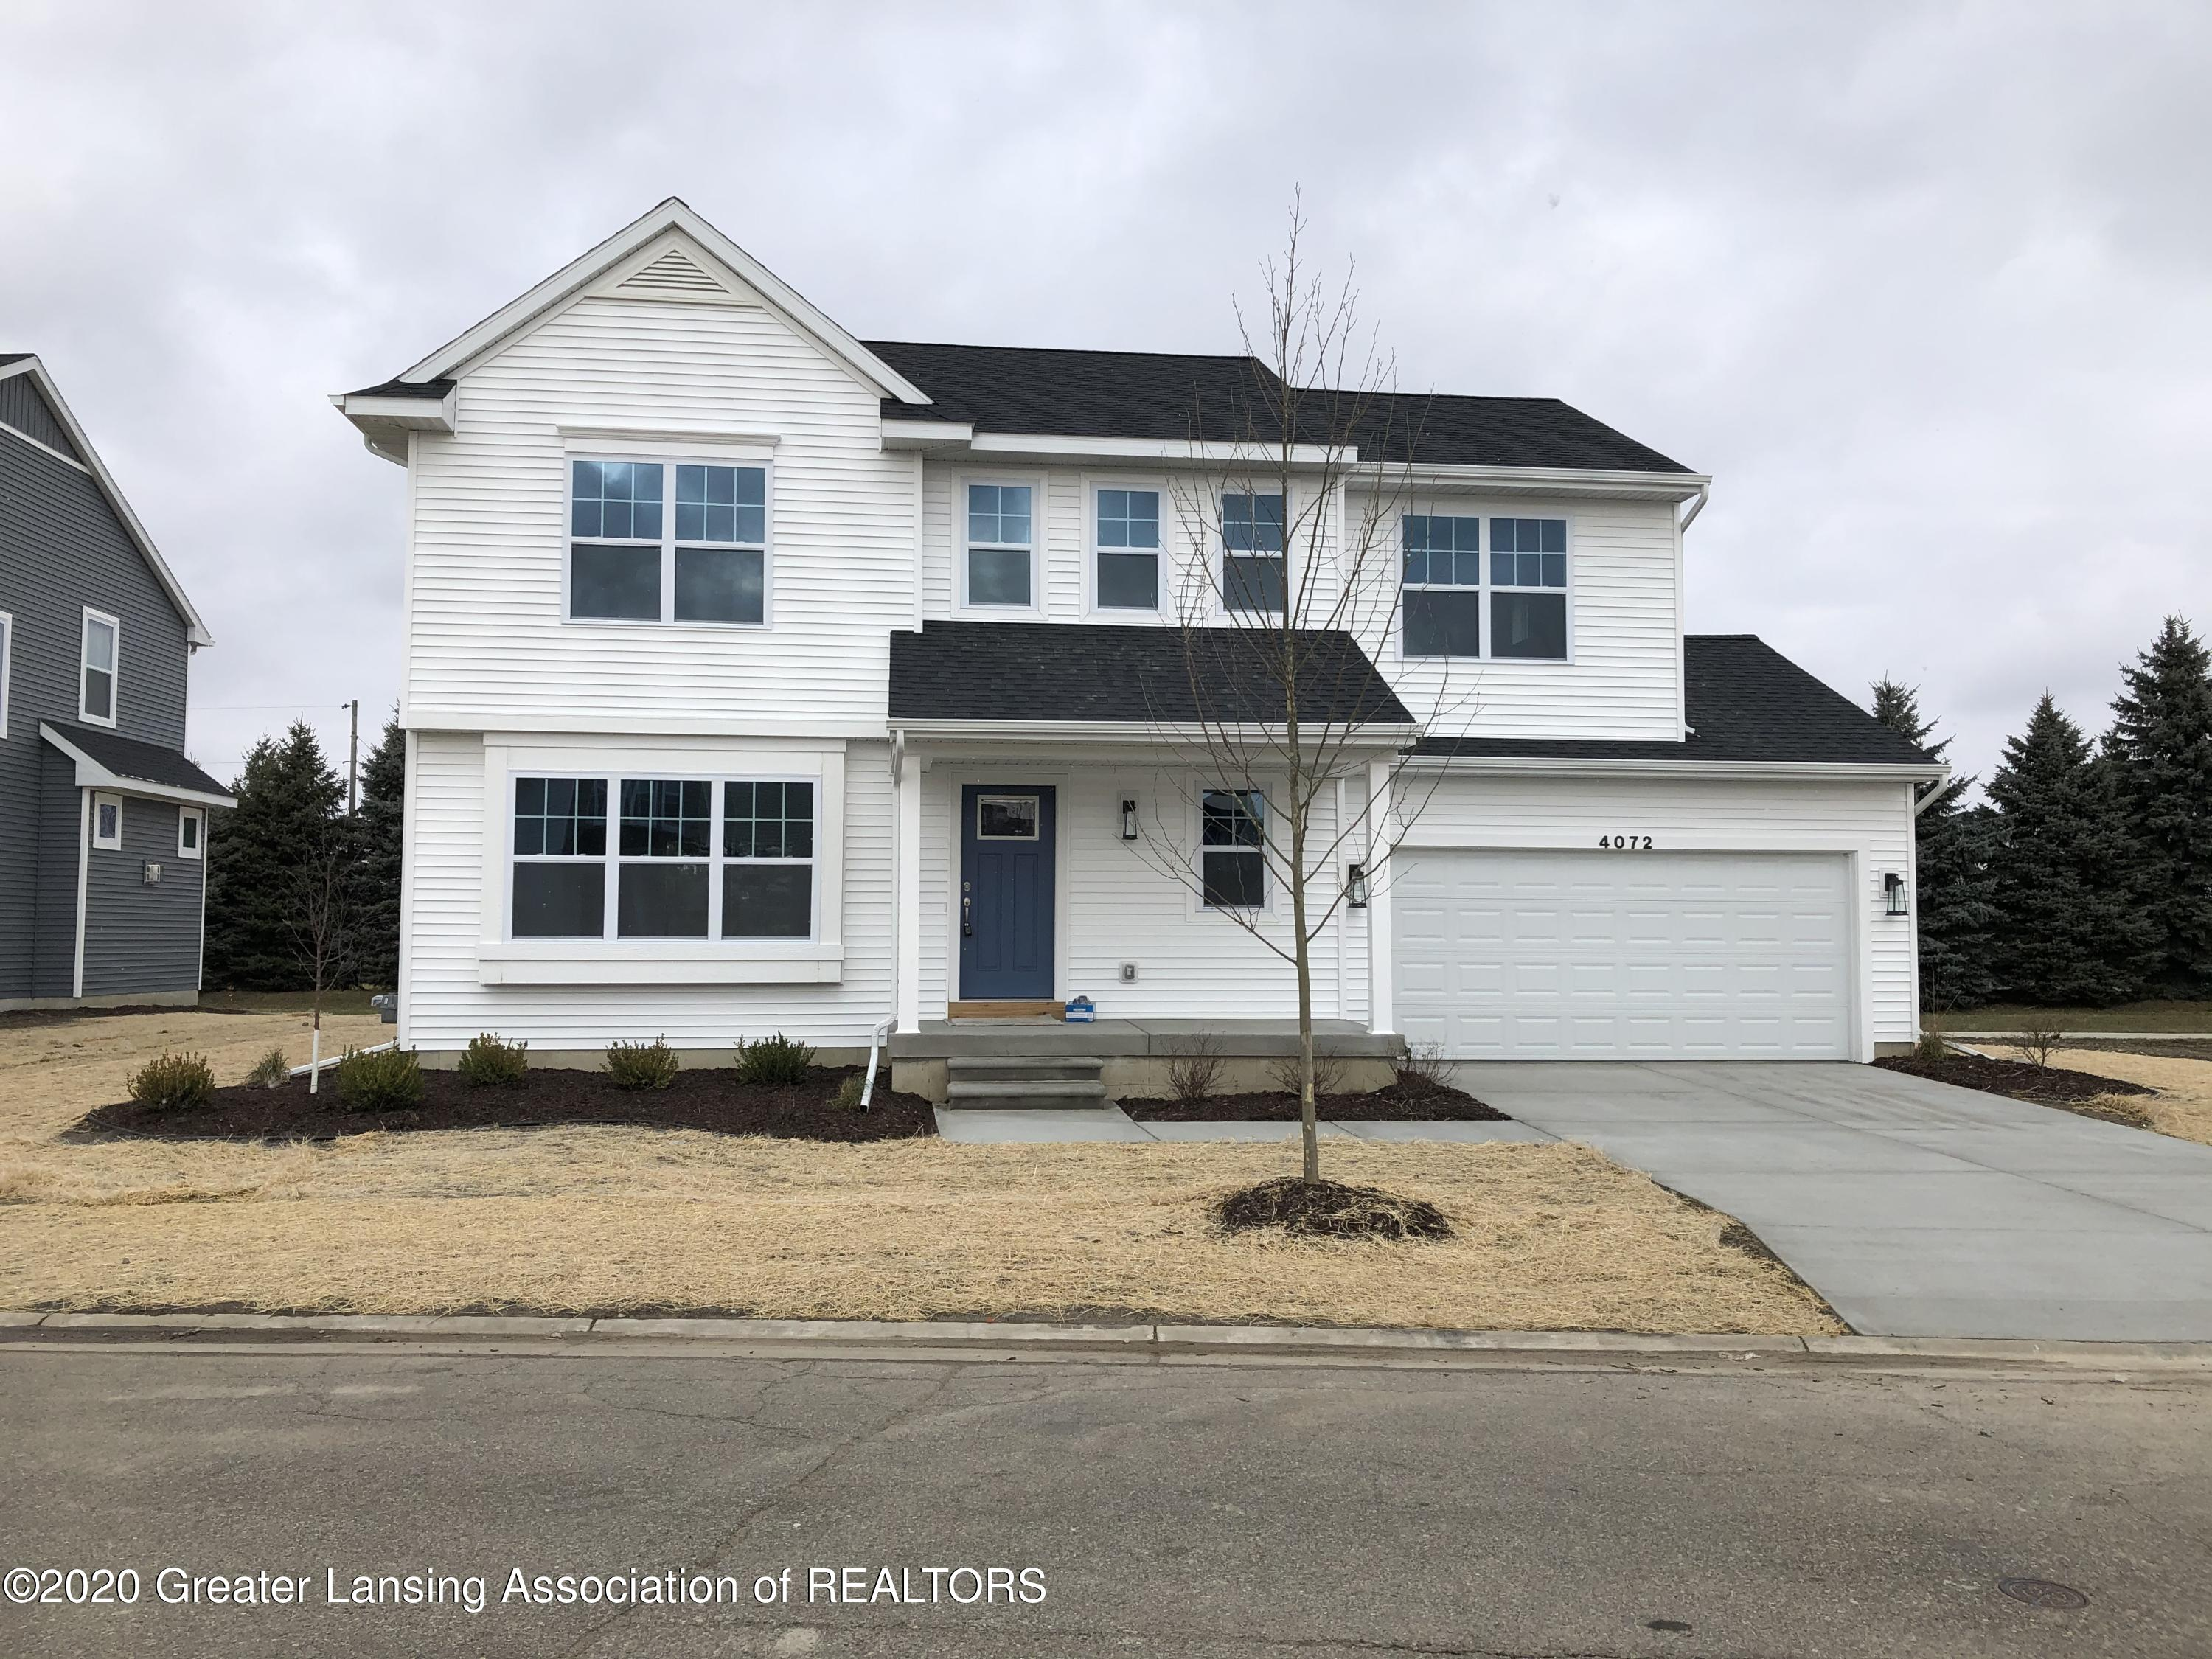 4072 Palomino Dr - Front Elevation - 1